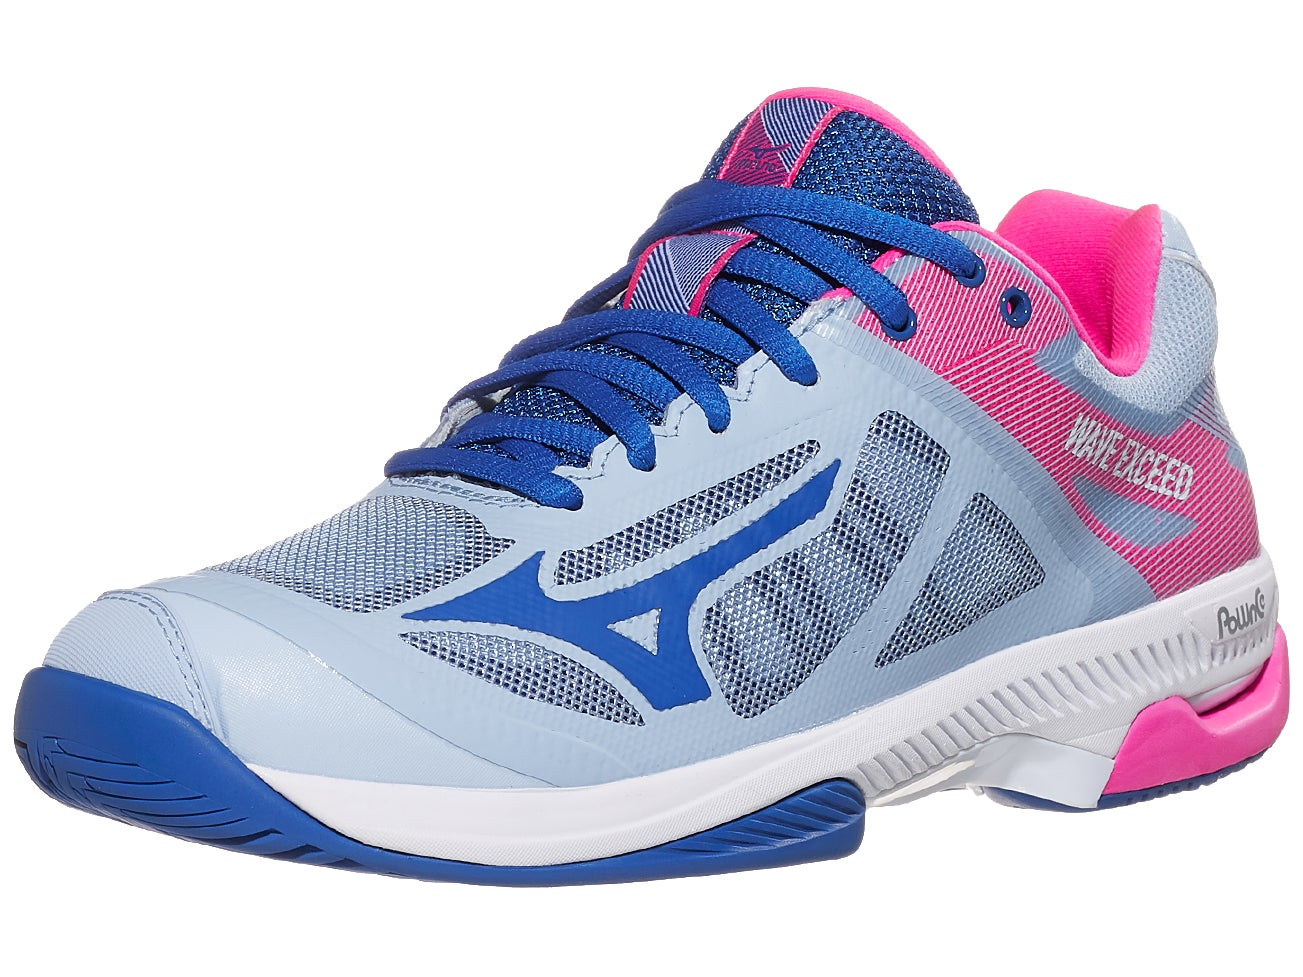 Mizuno Womens Wave Exceed 2 Clay Court Tennis Shoes Blue Pink White Sports